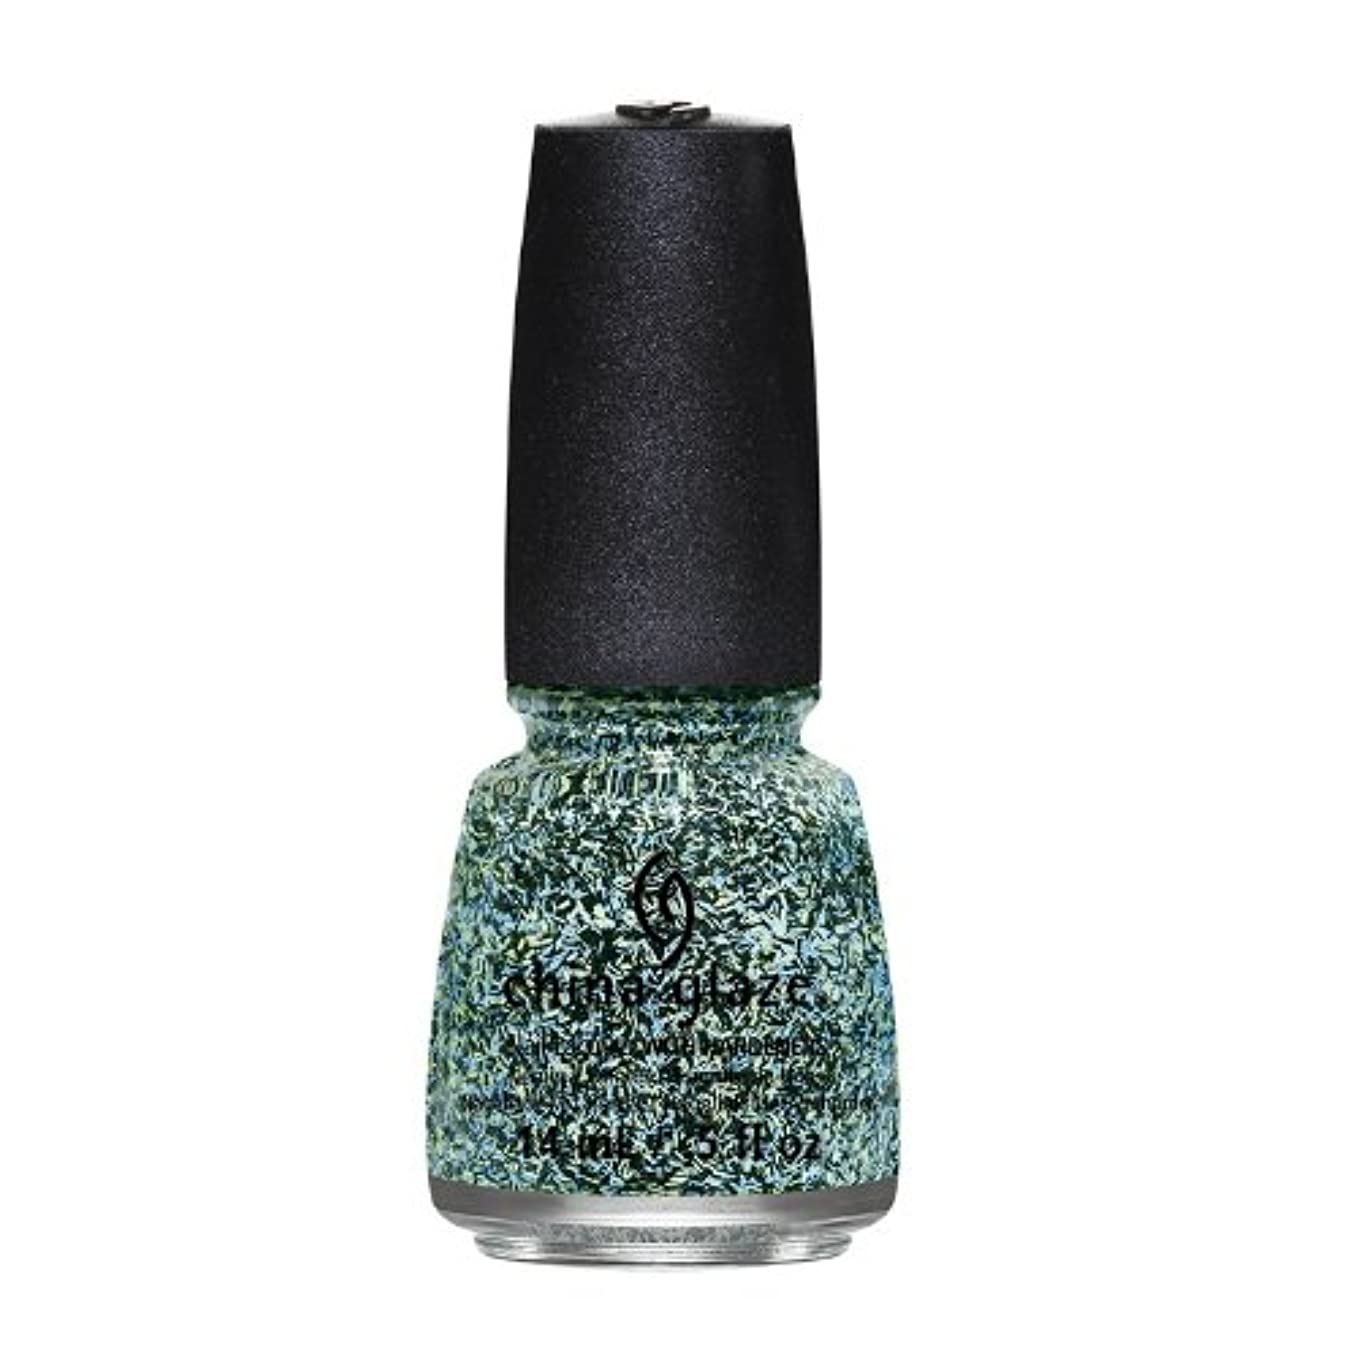 続ける四半期線形CHINA GLAZE On The Horizon - Feathered Finish - Flock Together (並行輸入品)